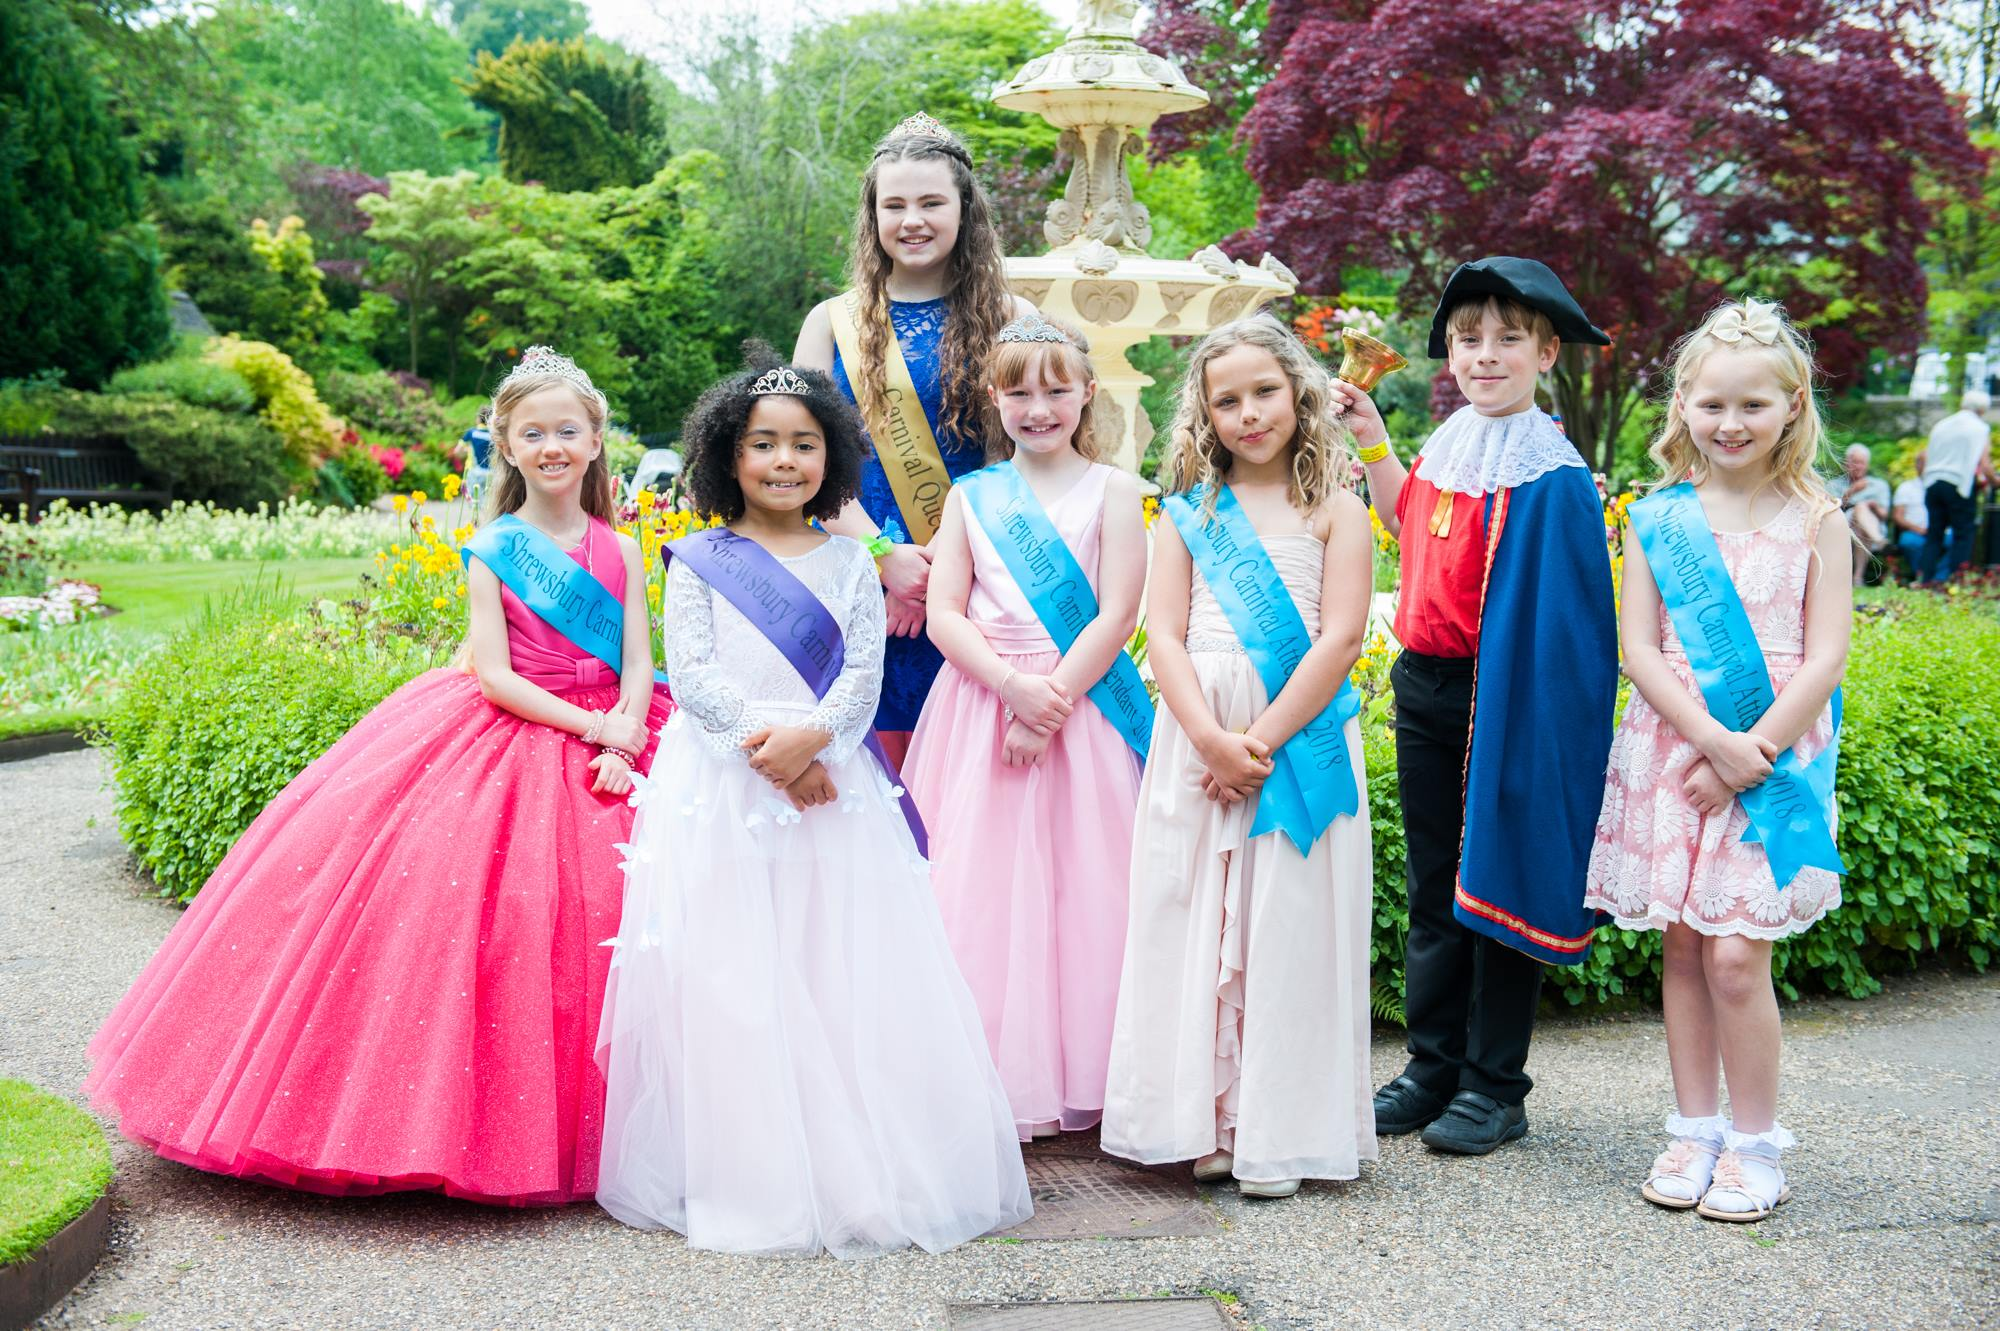 2018 Royalty in the dingle - Sophie, Teyana, Freya, Emily, Mia, Isaac and Gracie